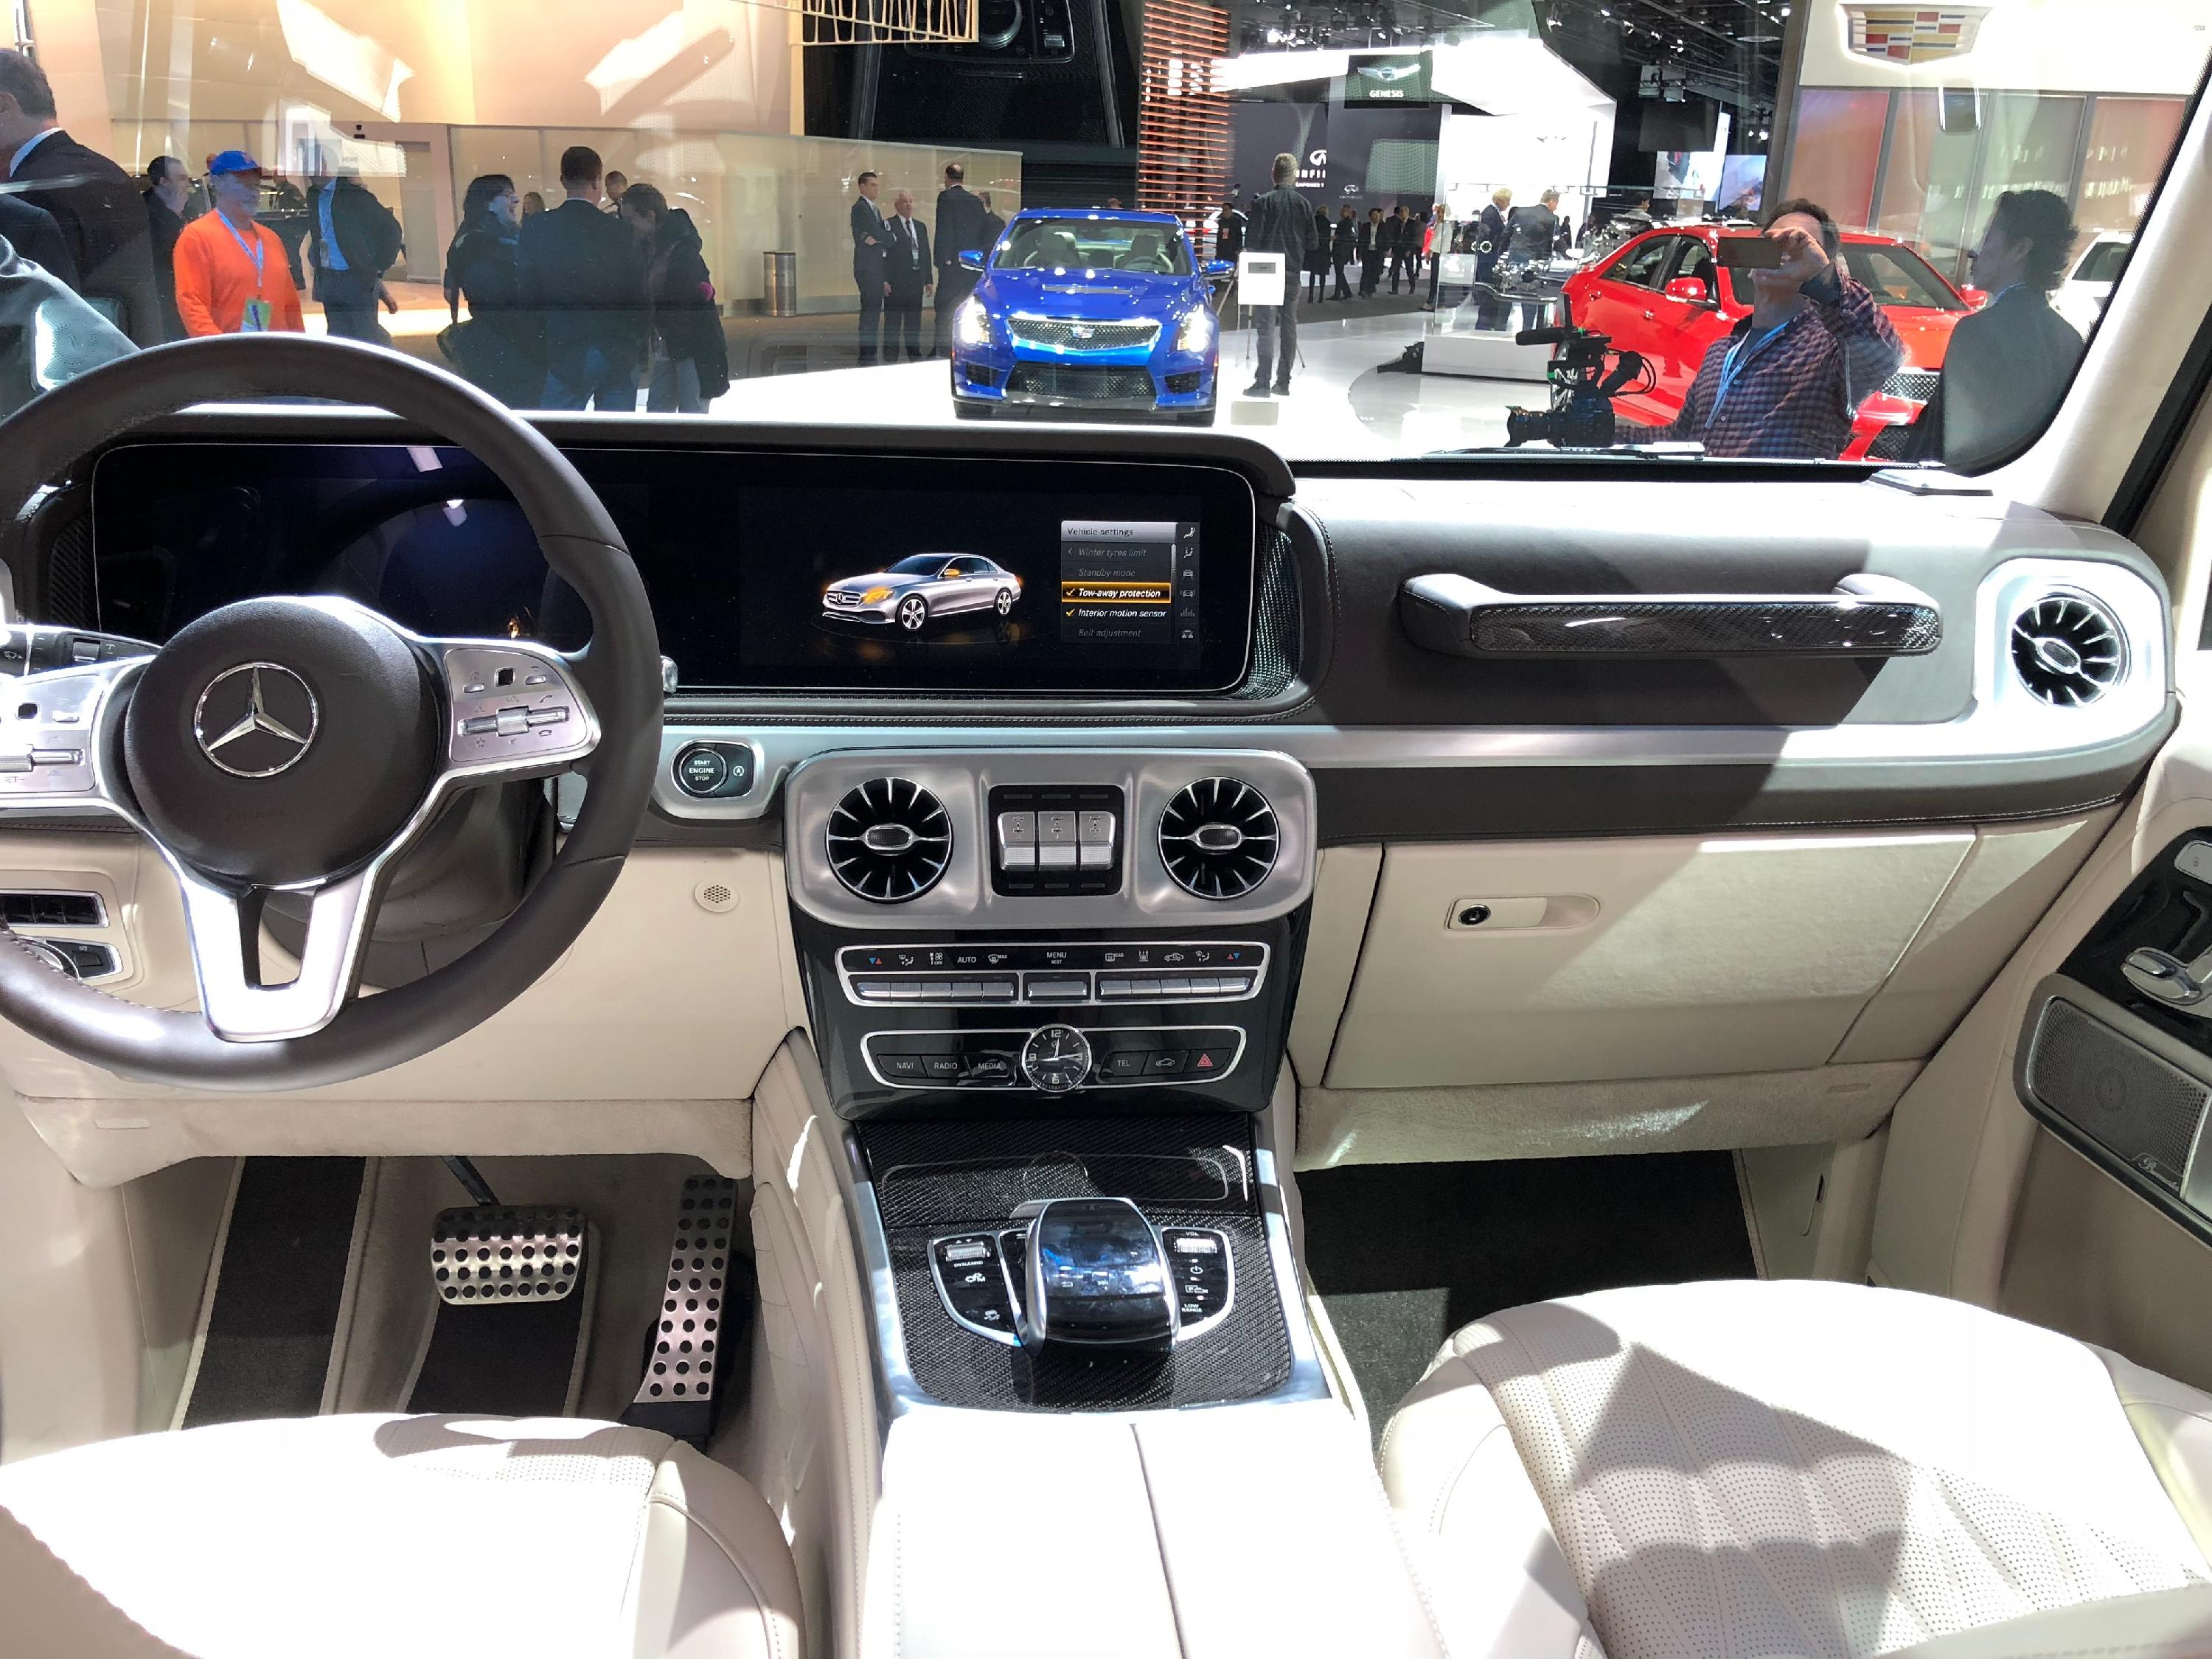 Mercedes G Wagon Interior 2019